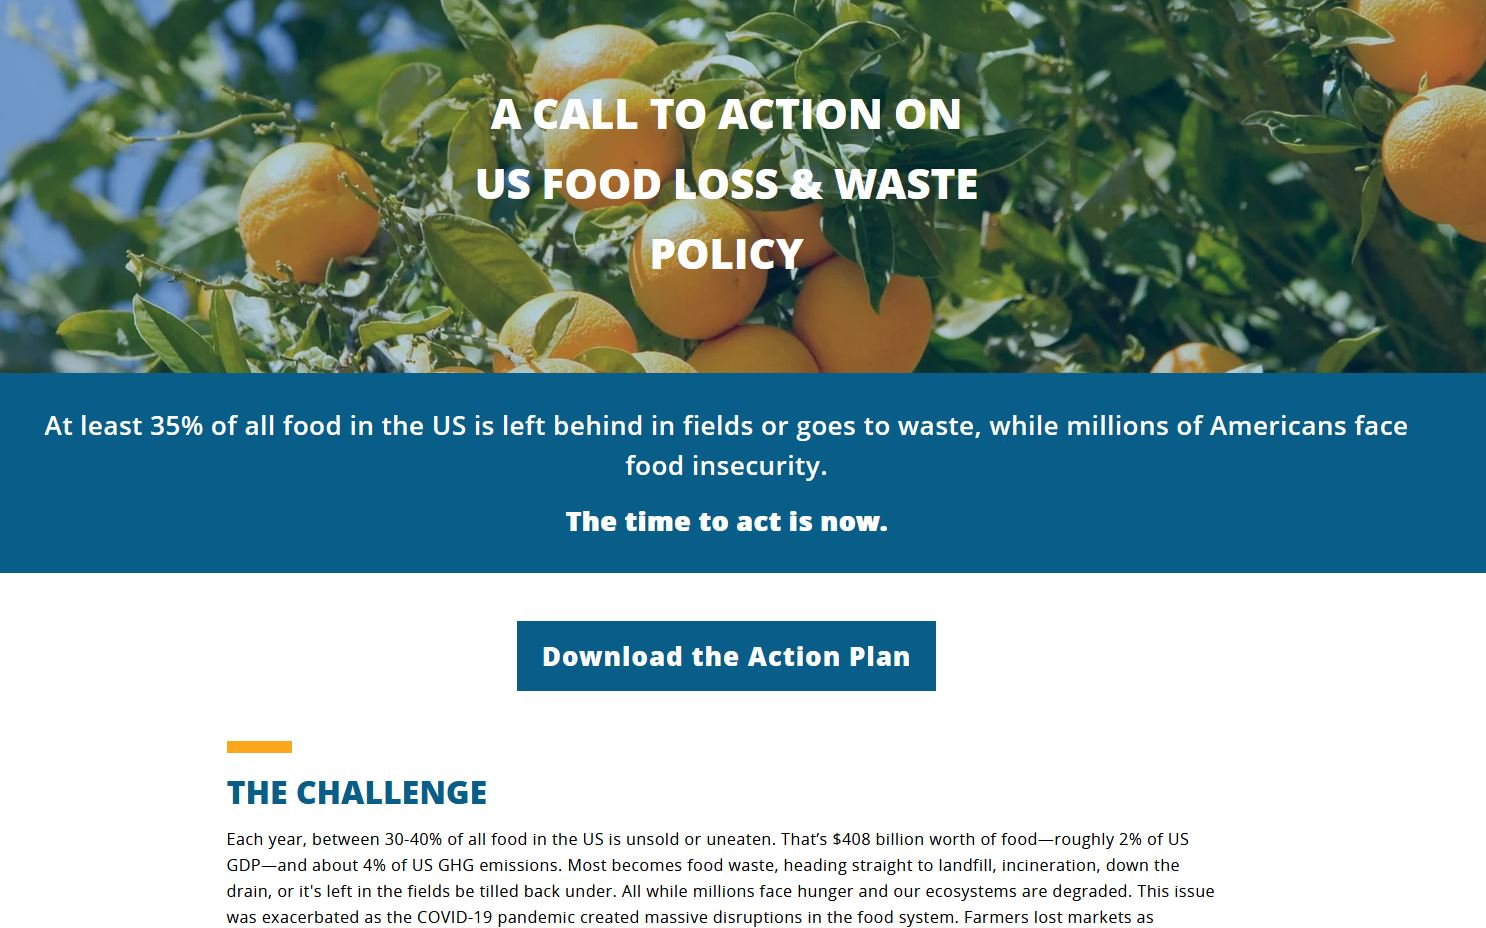 Screen shot of https://foodwasteactionplan.org/.